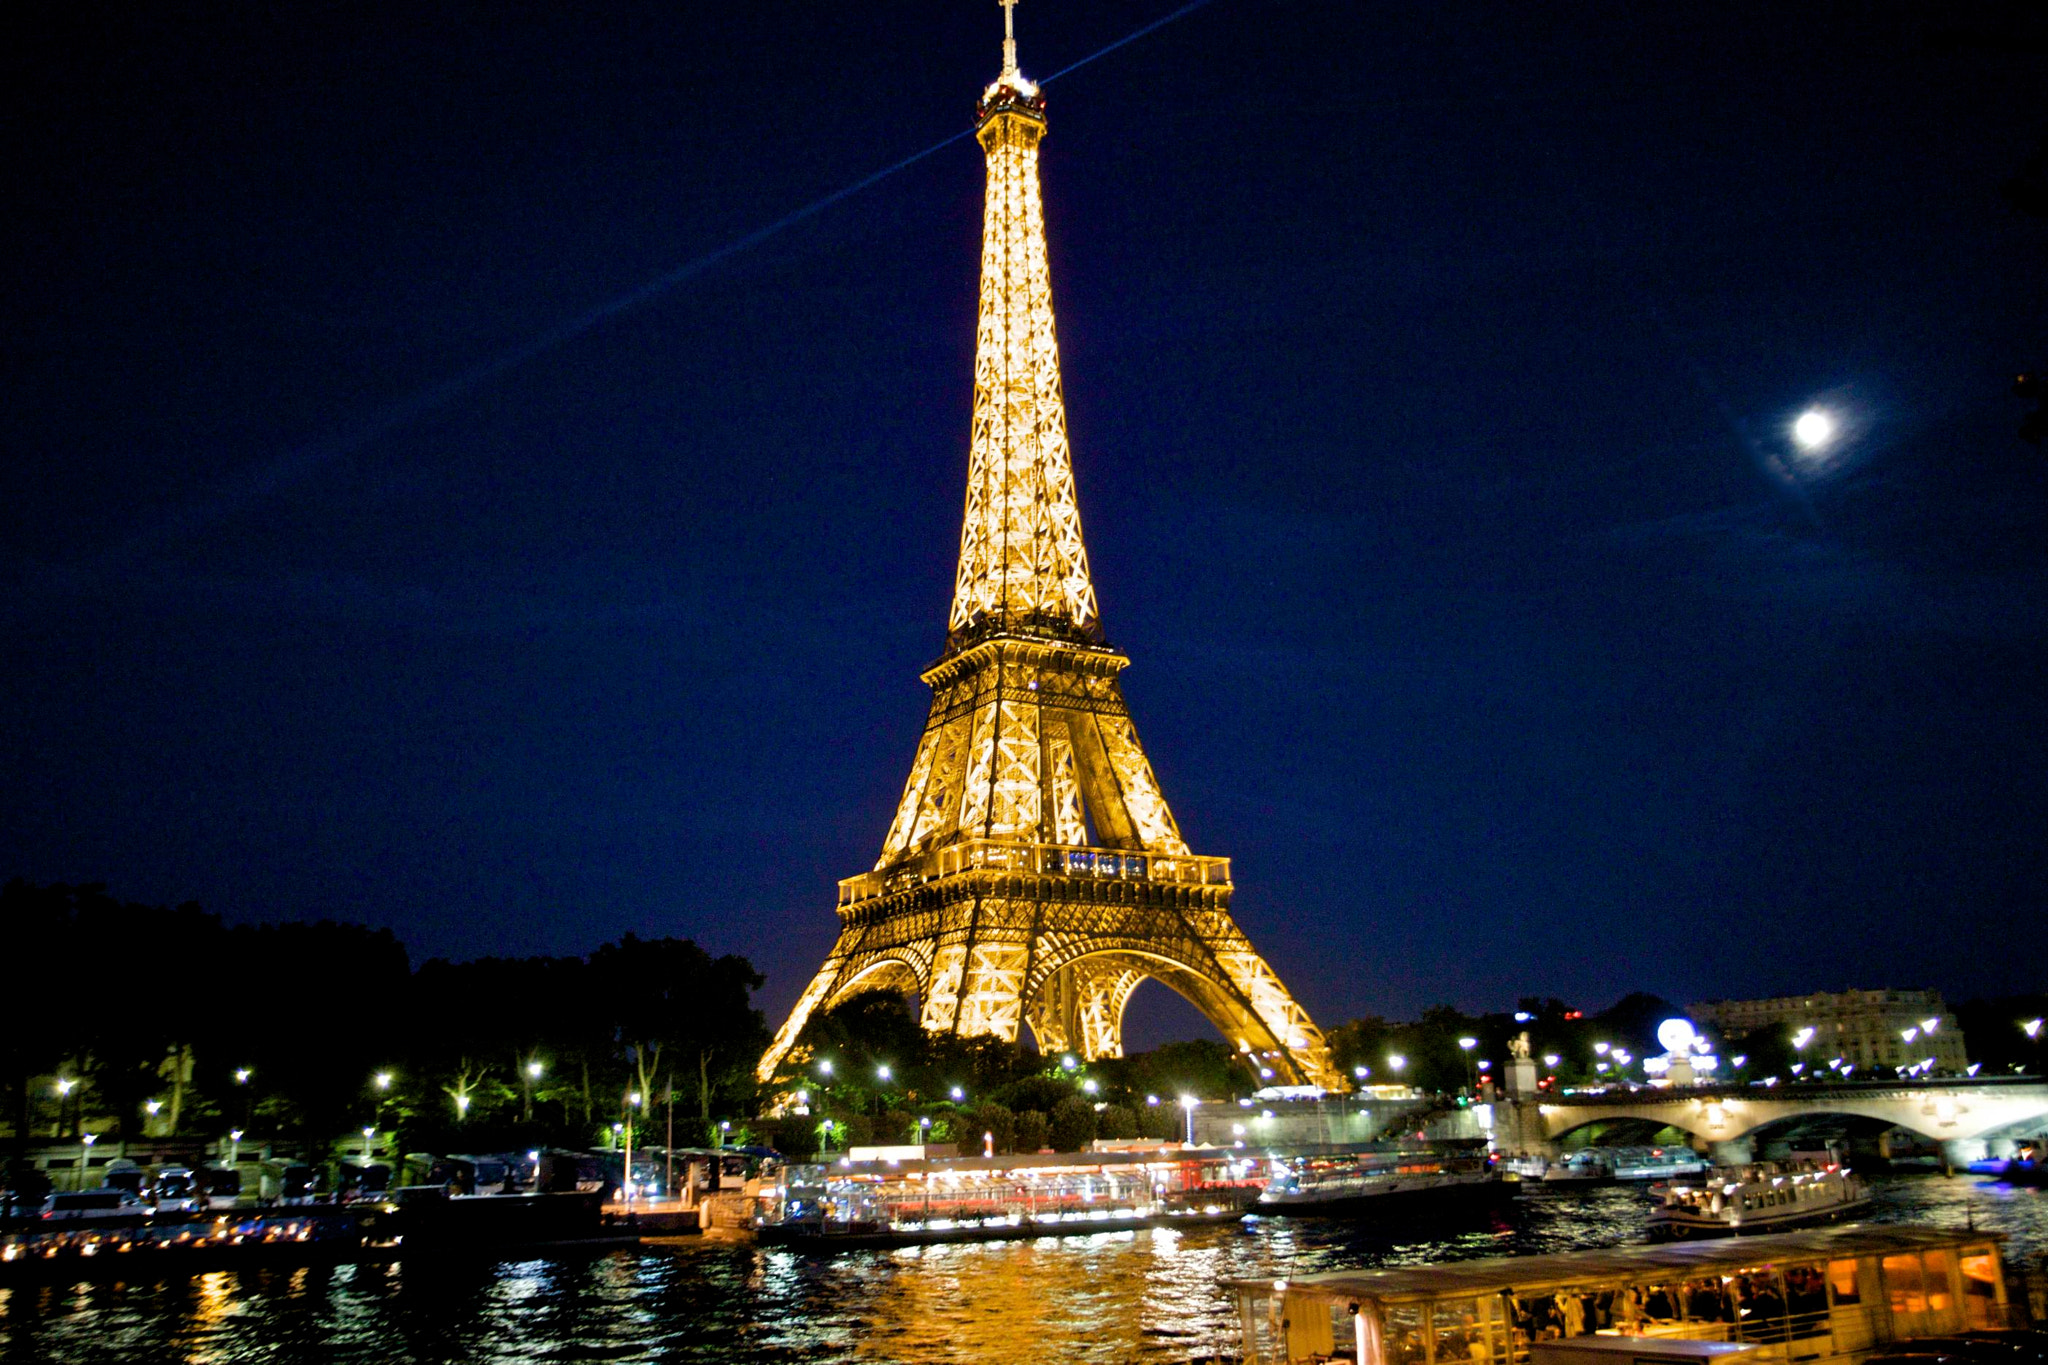 Photograph The Eiffel Tower from across the Seine by Jim Ranes on 500px